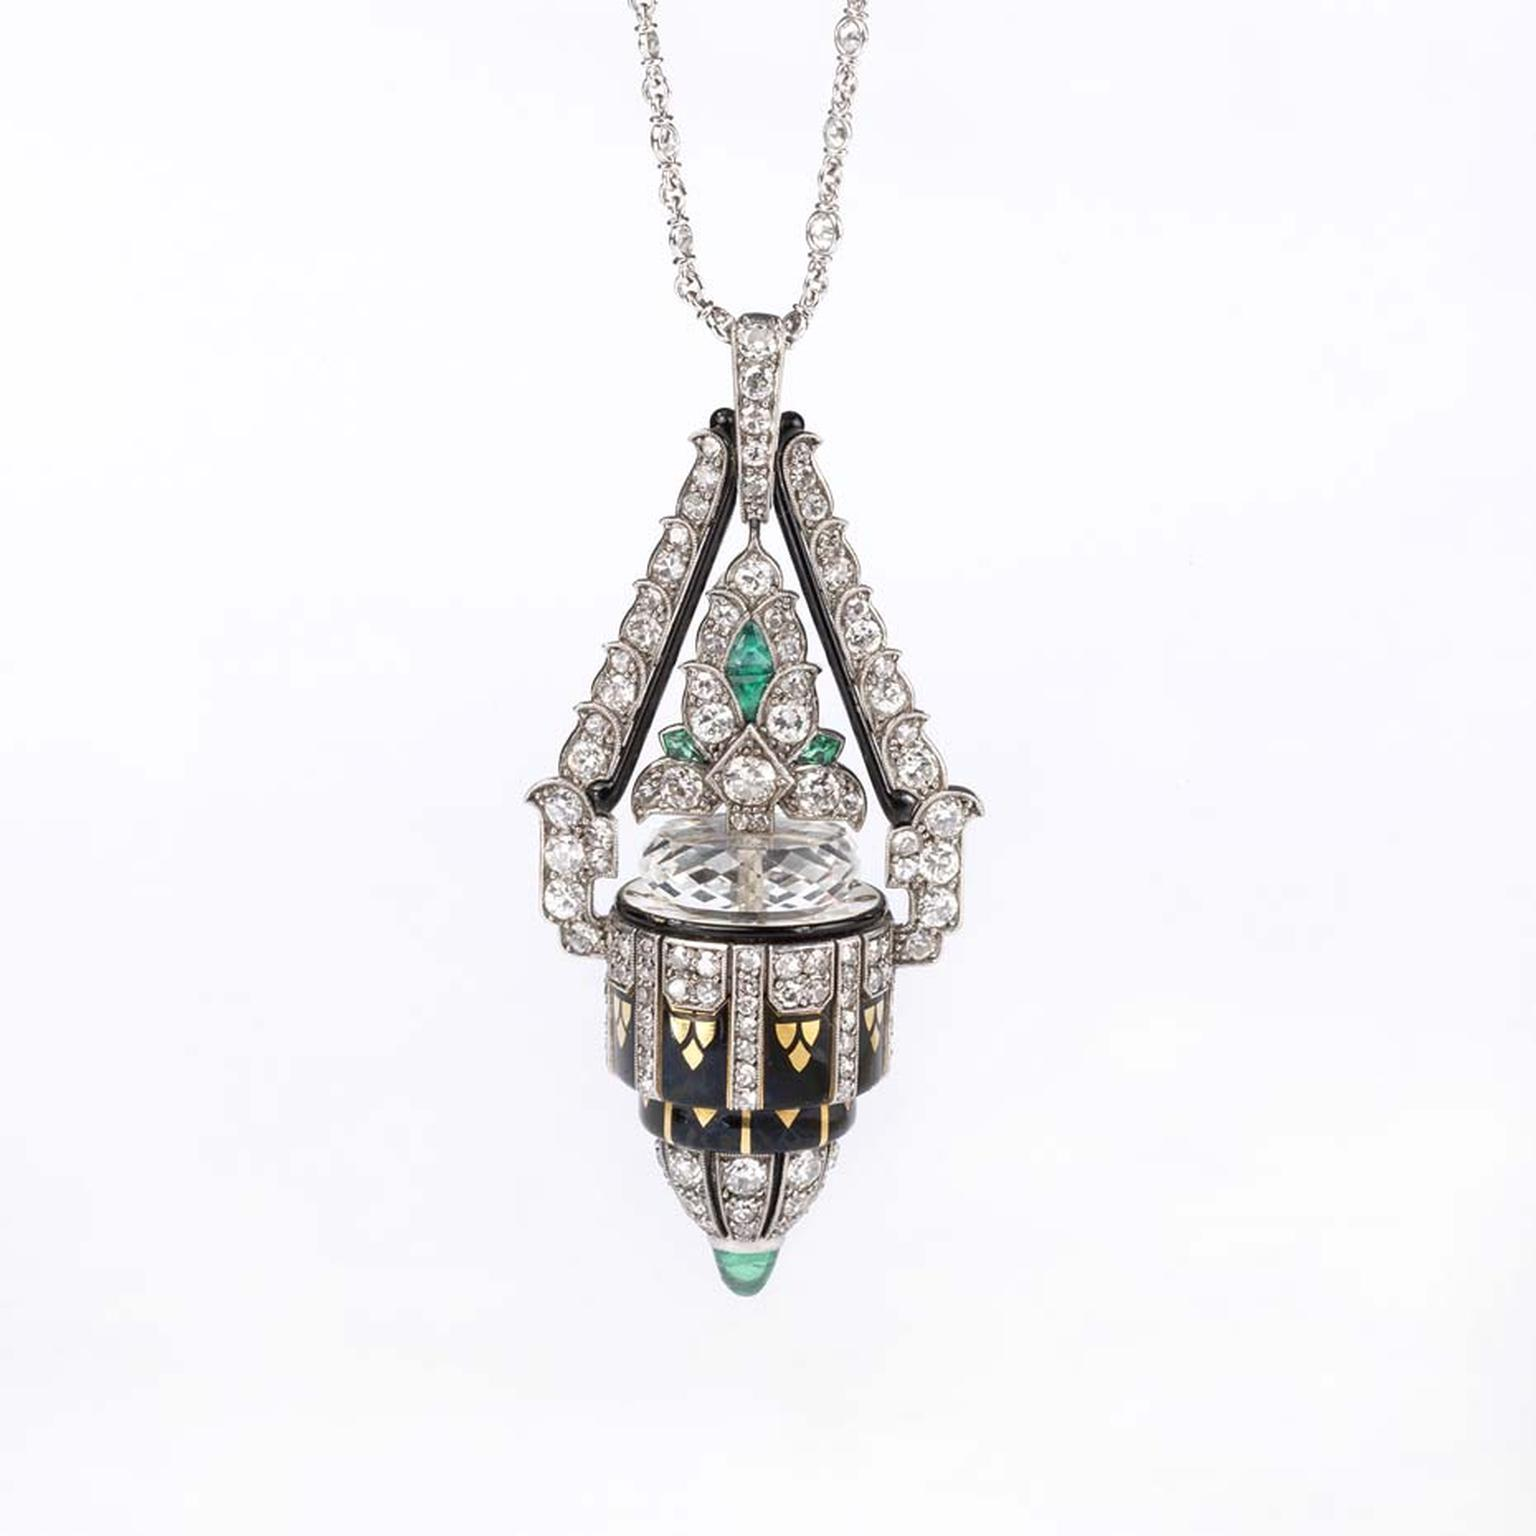 Morelle Davidson's Boucheron pendant watch, which dates back to the 1920s, with its bombé shape set with diamonds and emeralds, is typical of Art Deco design. The dial is signed Boucheron Brevete.